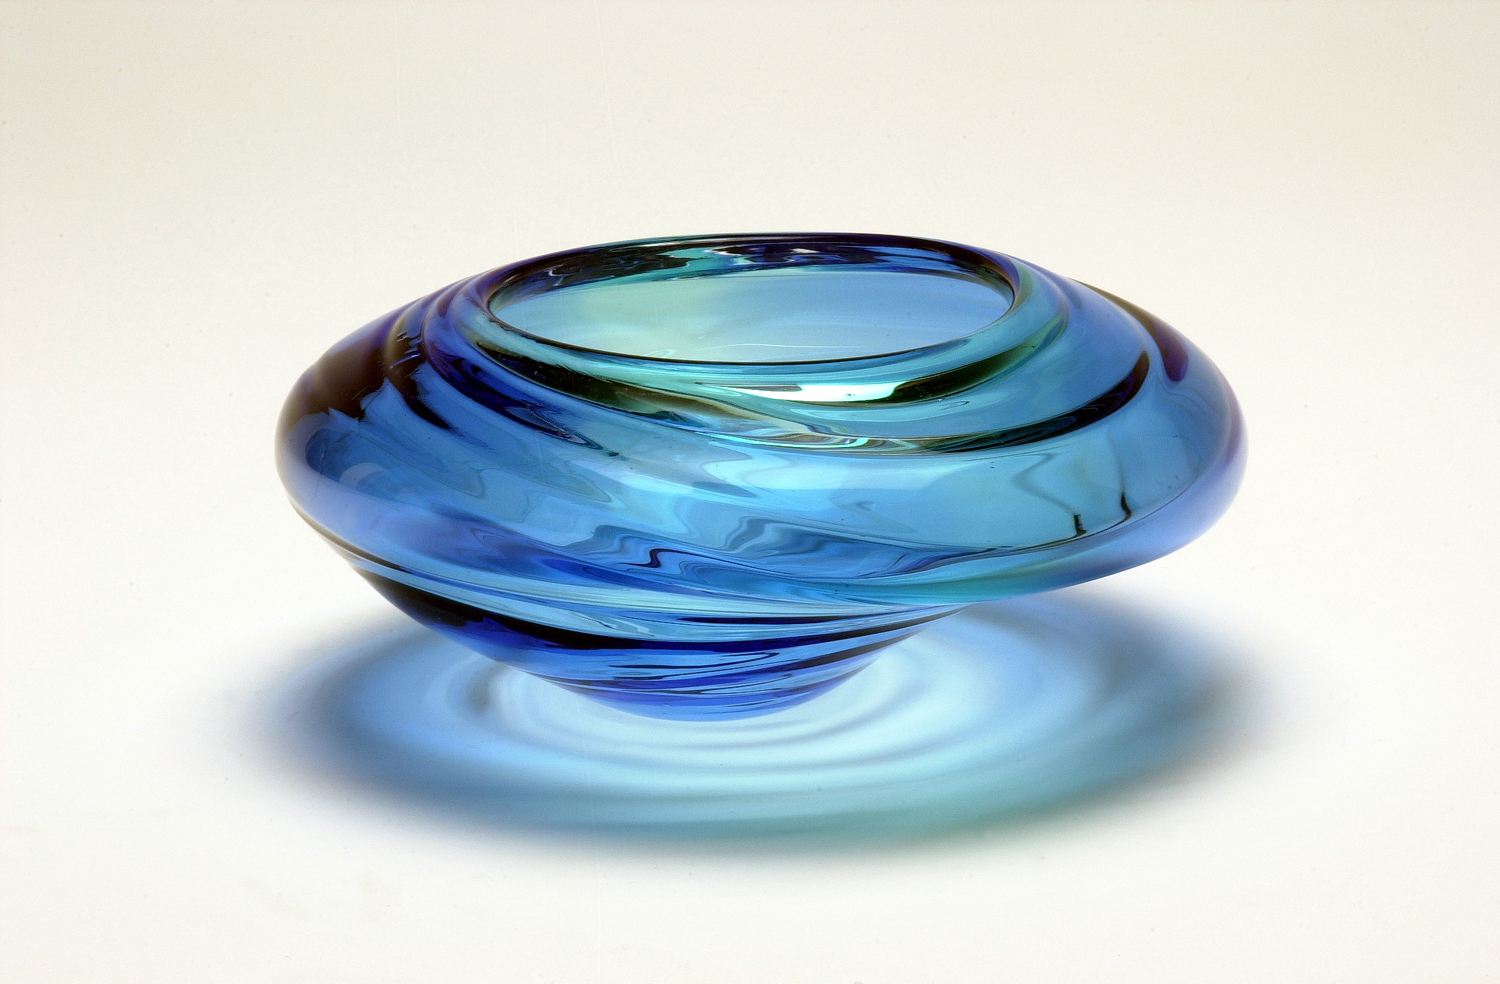 """Water Form - Blue"" 2003 H300mm x W330mm x D330mm"